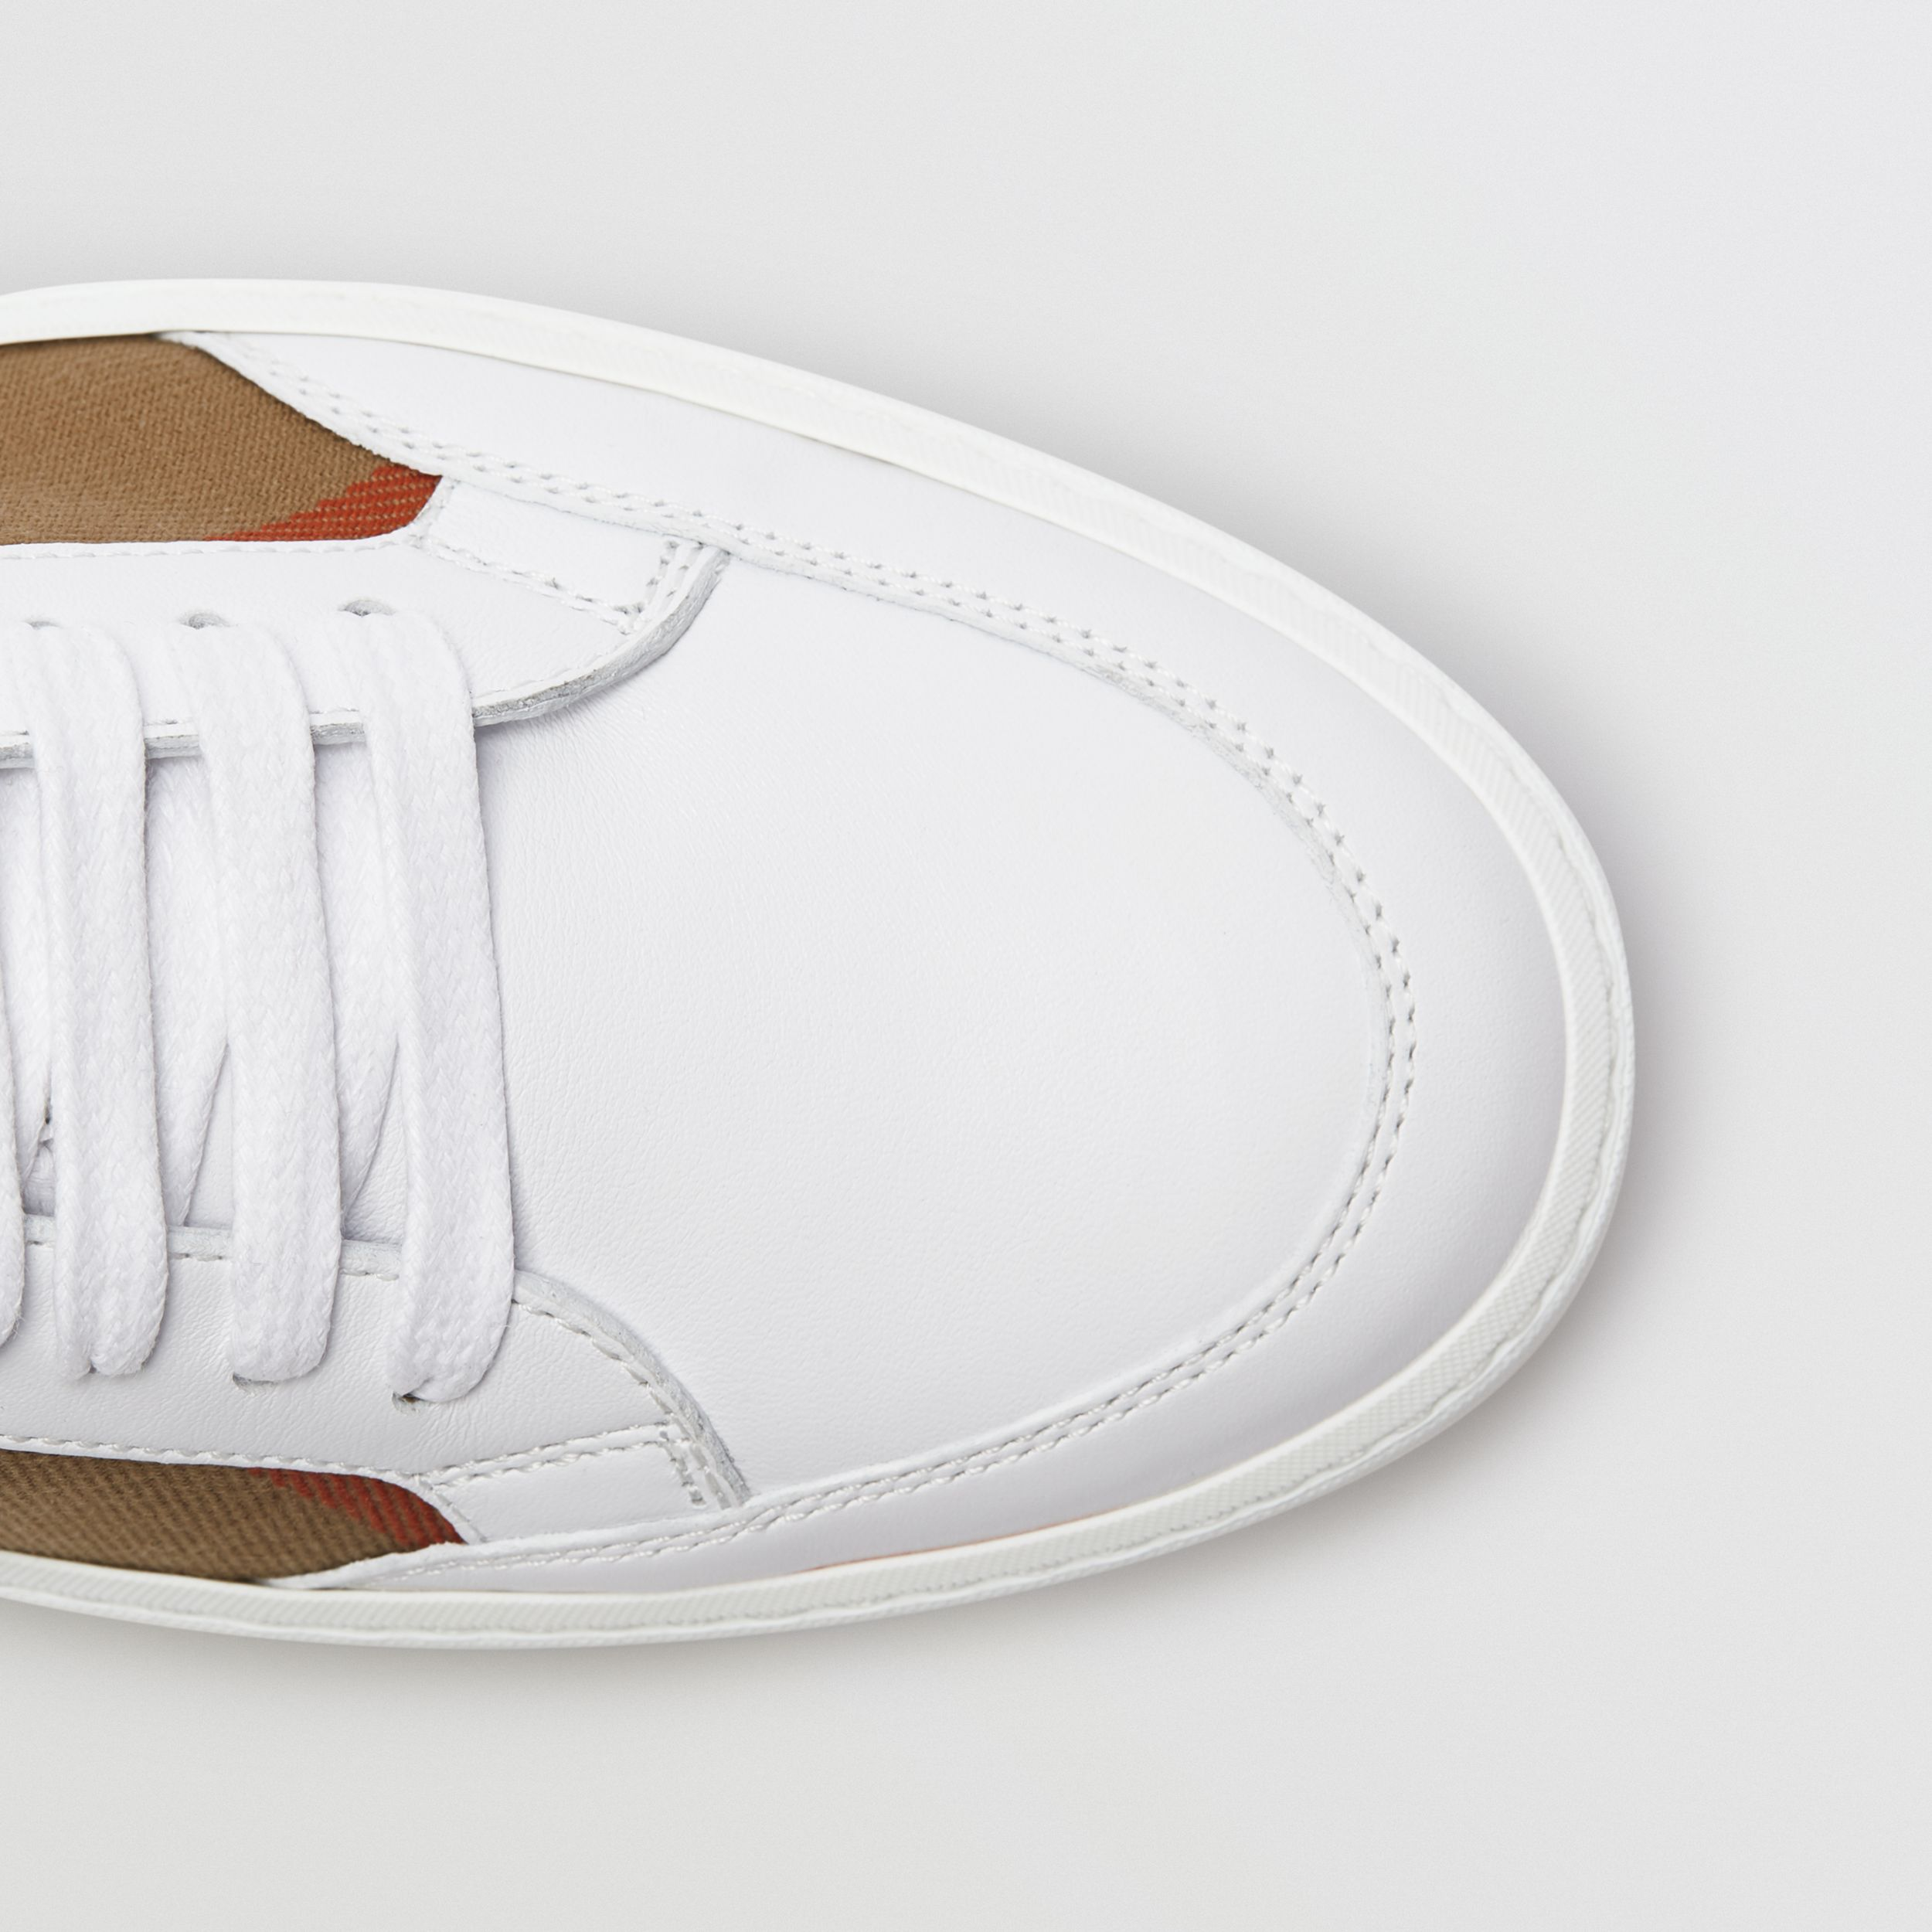 Check Detail Leather Sneakers in House Check/ Optic White - Women | Burberry United Kingdom - 2